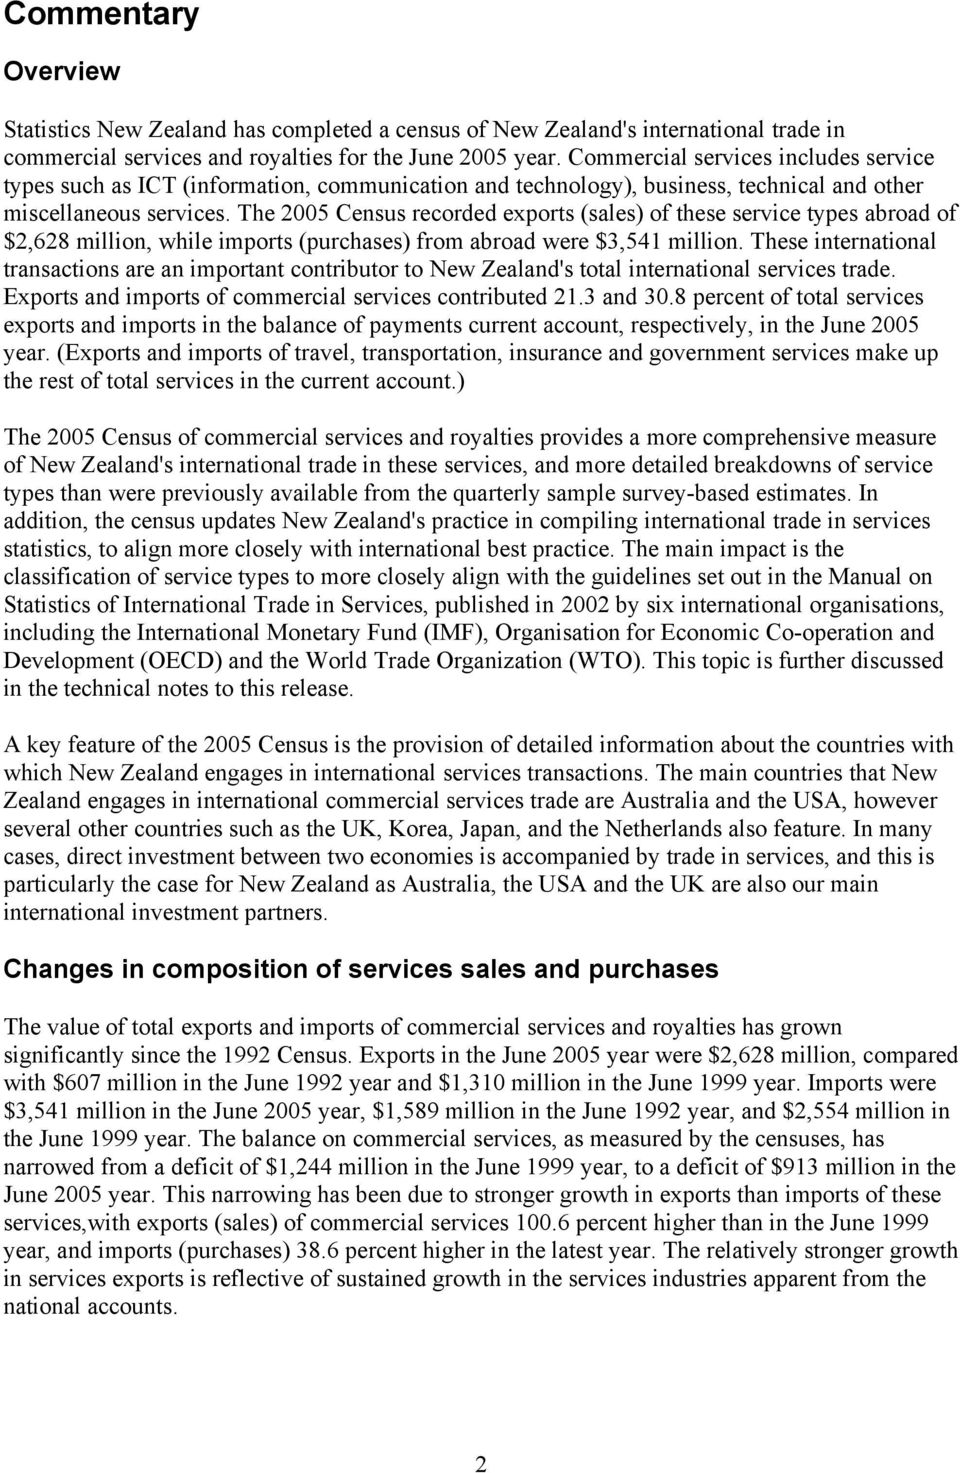 The 2005 Census recorded exports (sales) of these service types abroad of $2,628 million, while imports (purchases) from abroad were $3,541 million.